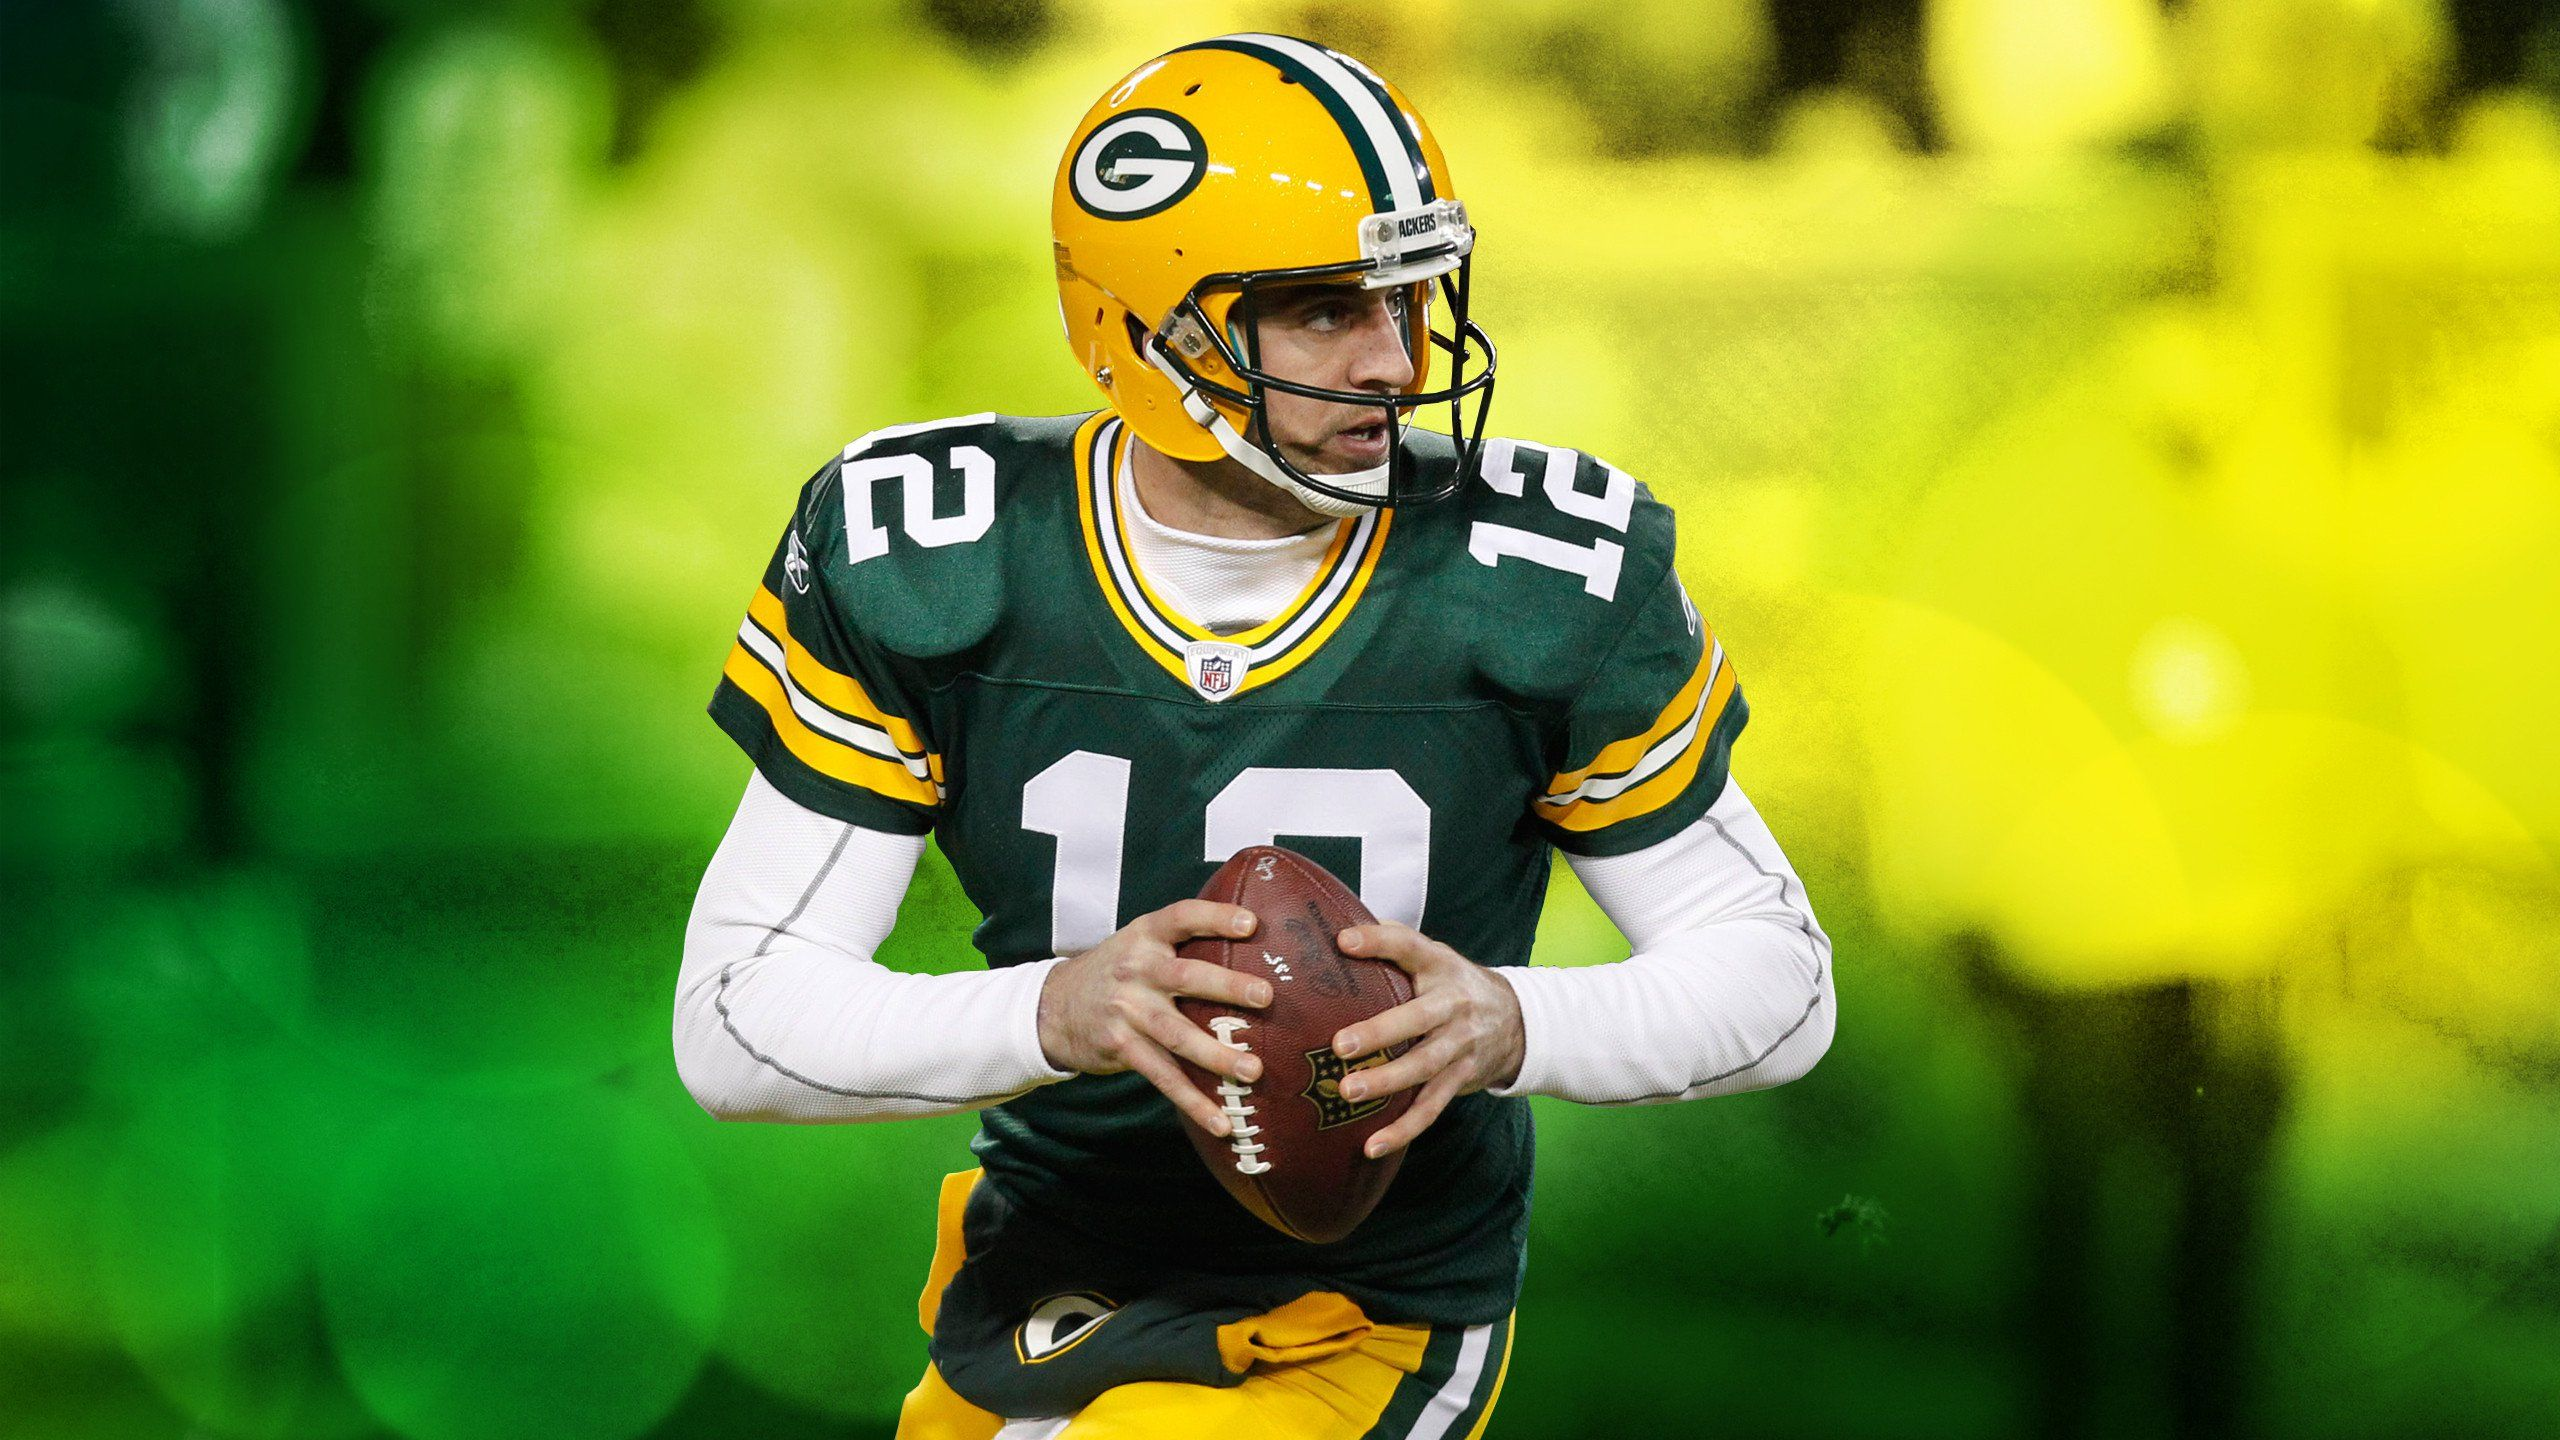 Related Image Aaron Rodgers Green Bay Packers Wallpaper Green Bay Packers Funny